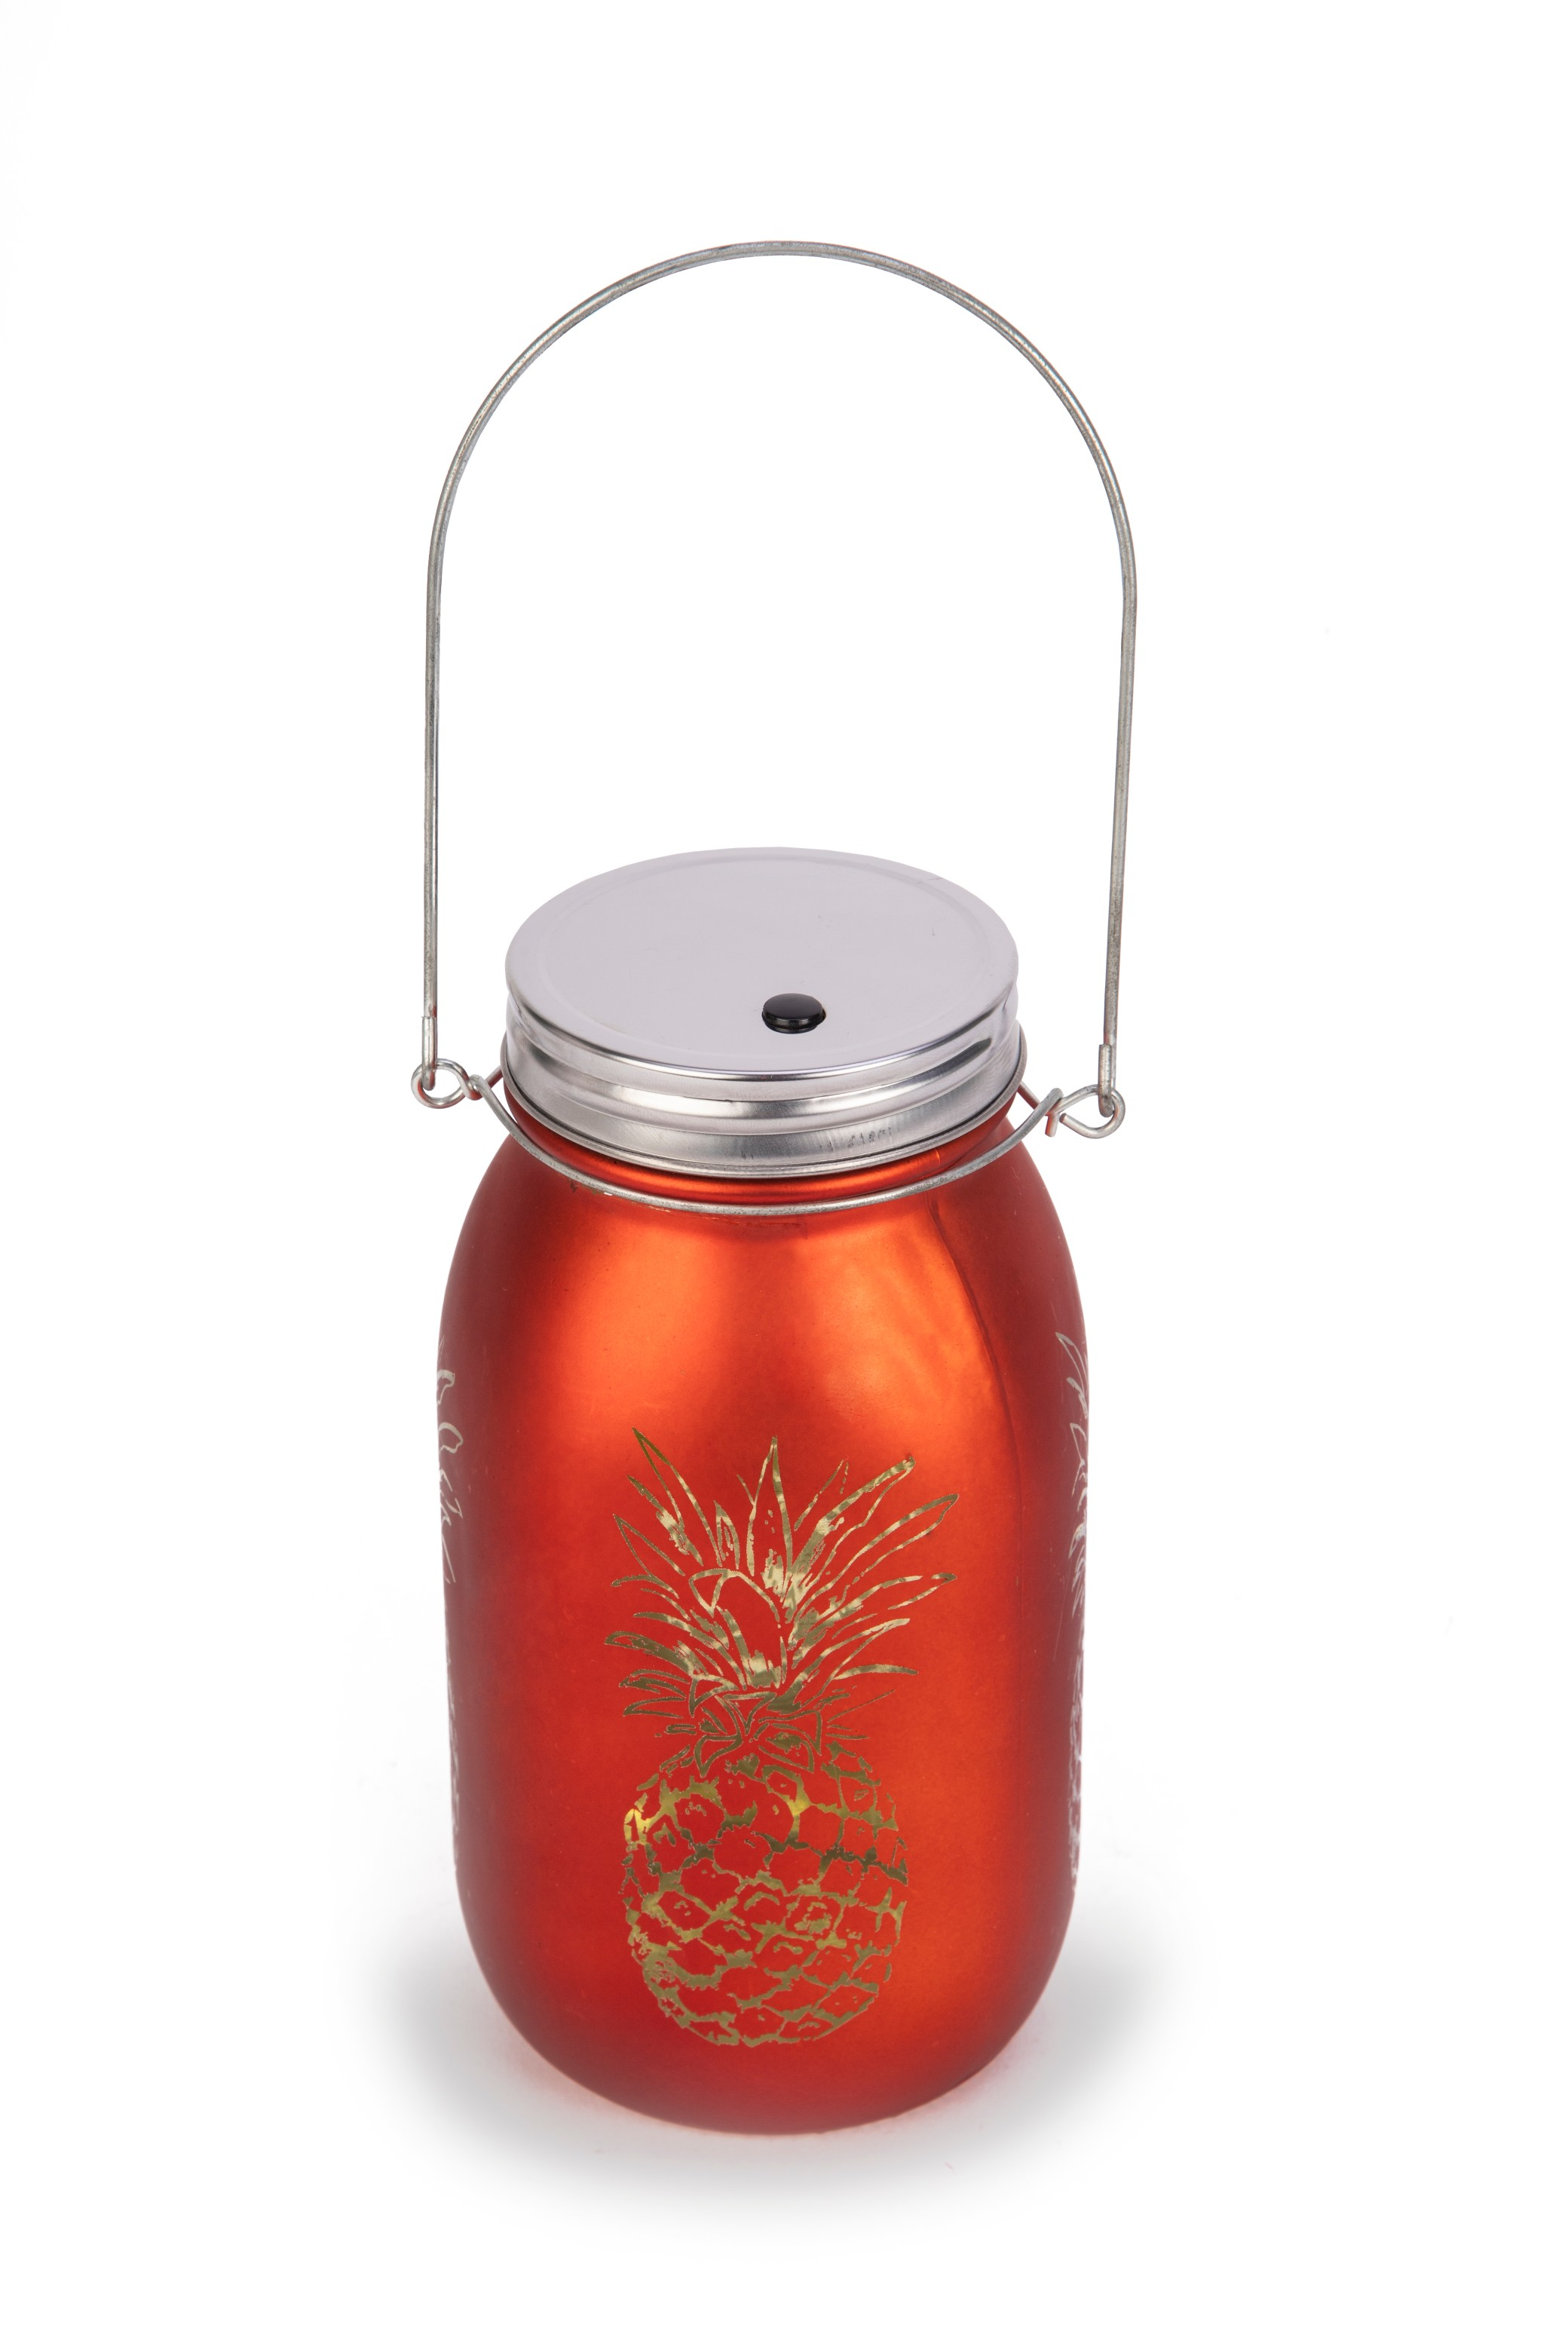 AW17 VENUS P.APPLE CUTOUT MASON JAR ORNG Glass Accent Lighting in Orange Colour by Living Essence